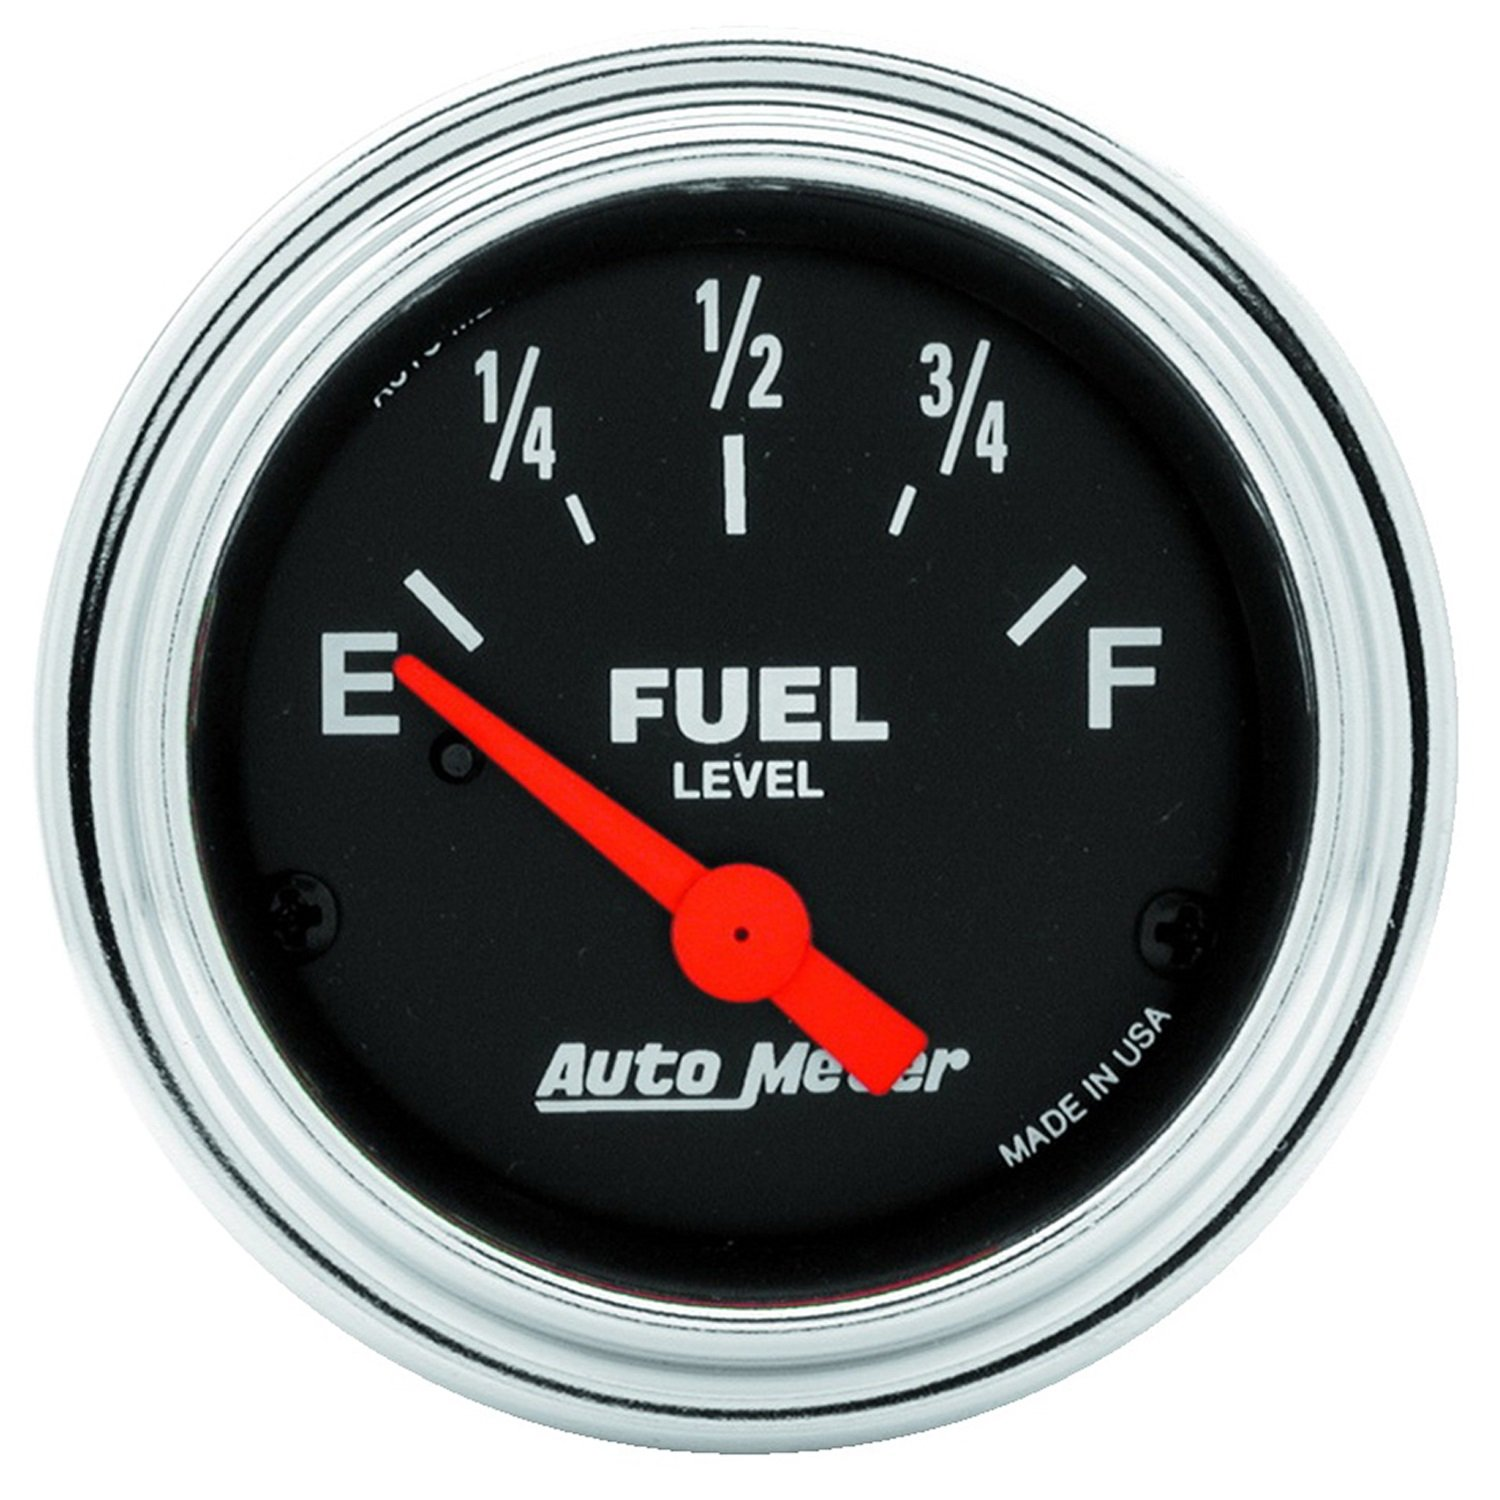 Auto Meter 2516 Traditional Chrome Electric Fuel Level Gauge